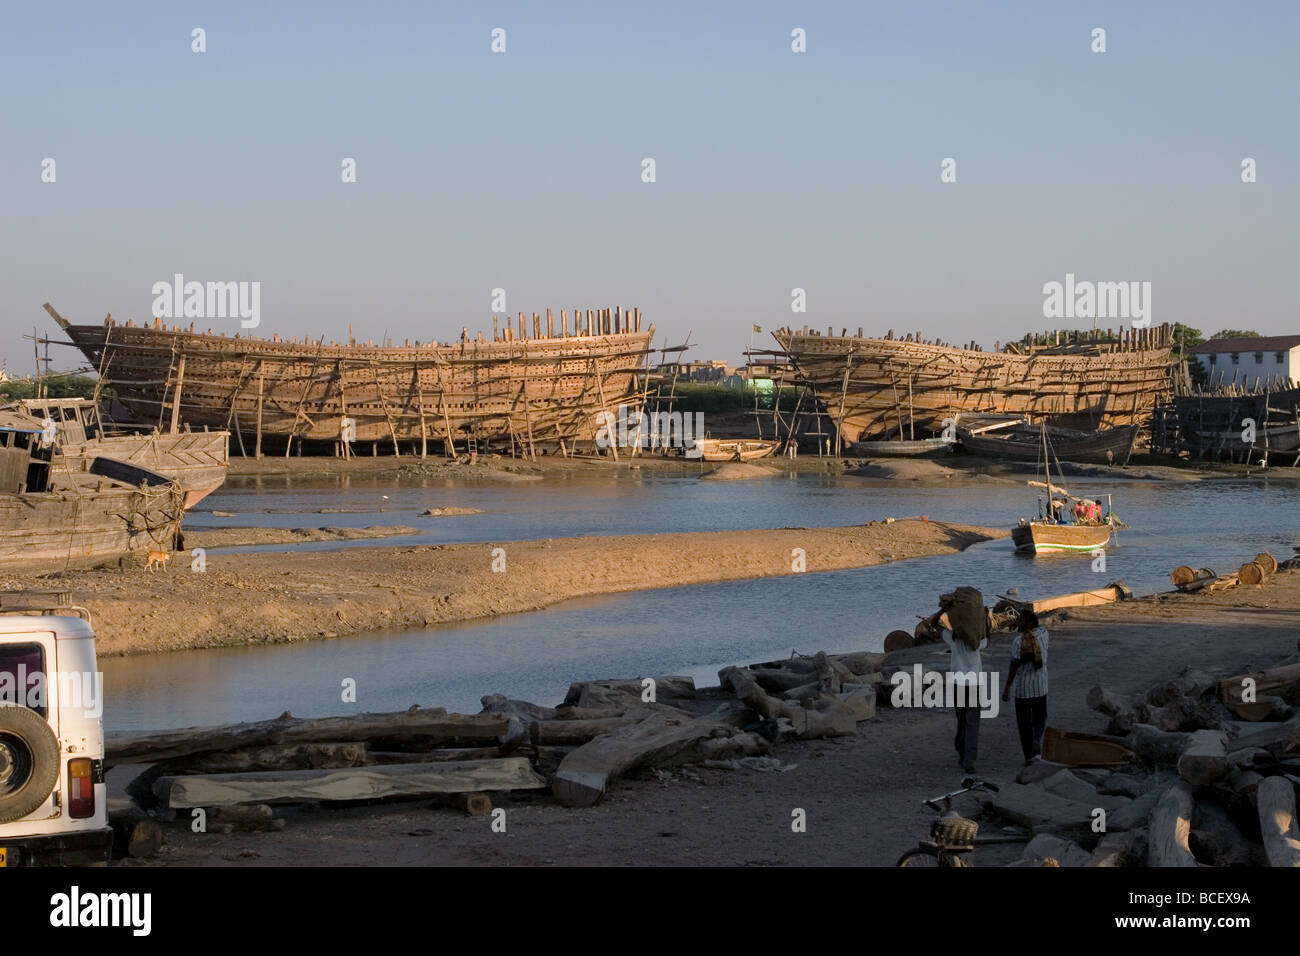 Large Wooden Ships being manually constructed at Ship-yard. Rukmavati River, Mandvi Beach, Kutch, Gujarat State, - Stock Image